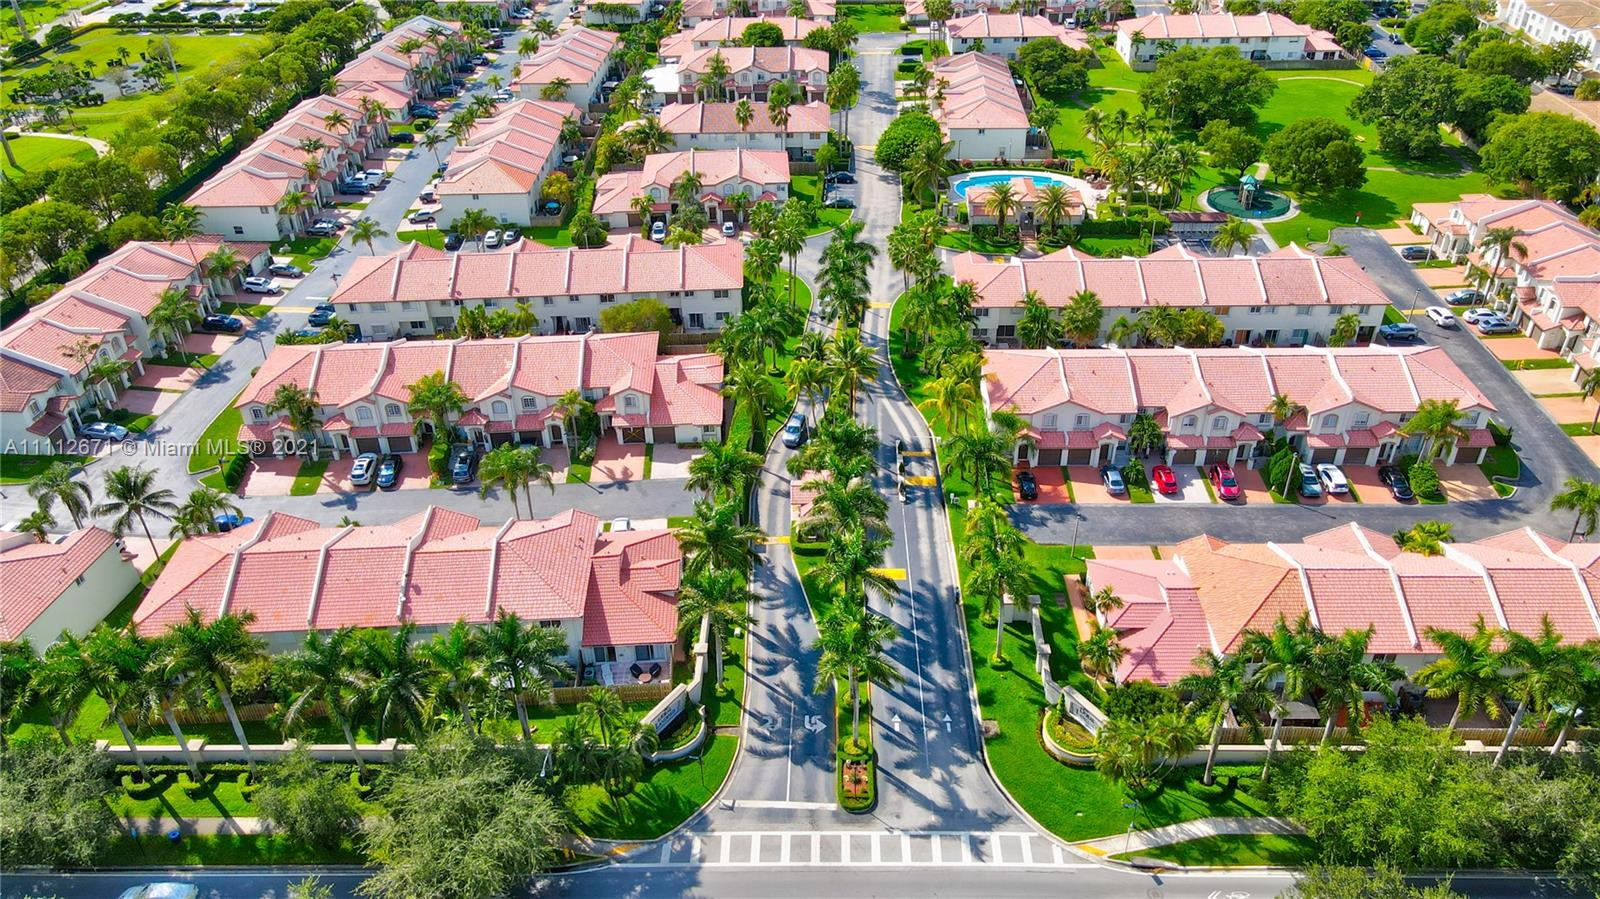 DORAL LANDINGS TOWNHOMES Condo,For Sale,DORAL LANDINGS TOWNHOMES Brickell,realty,broker,condos near me